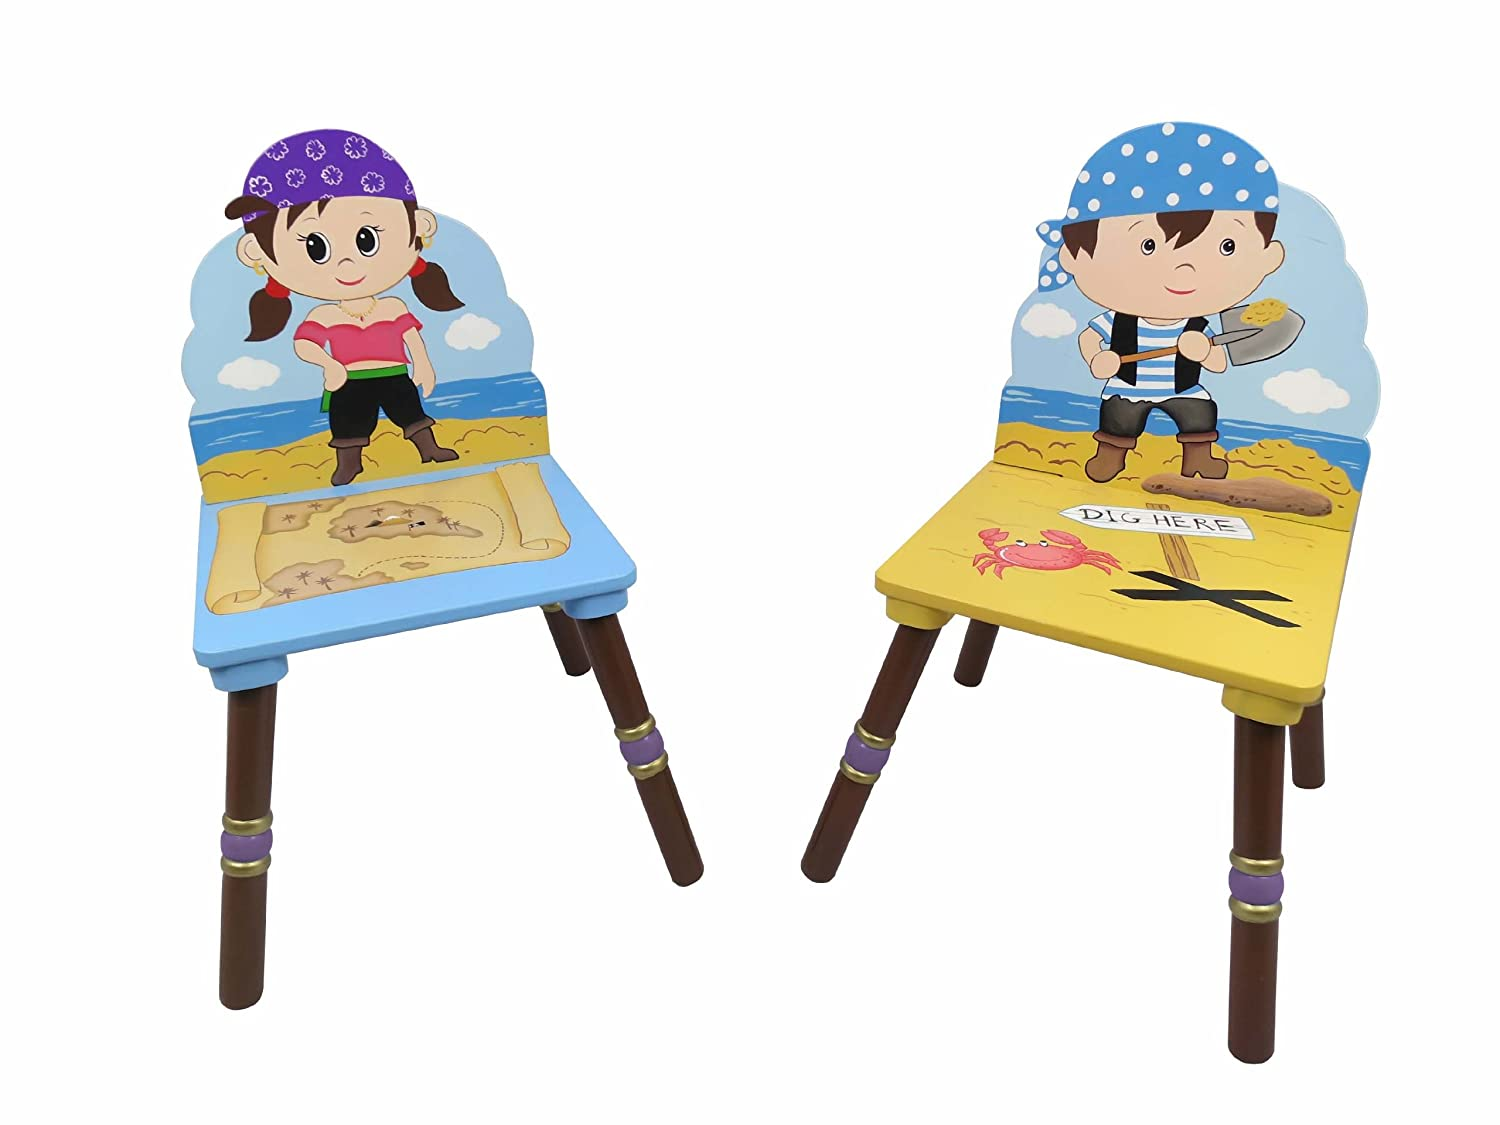 Fantasy Fields - Pirate Island themed Kids Wooden 2 Chairs Set Blue & Purple (Table Sold Seperately)|Hand Crafted & Hand Painted Details | Child Friendly Water-based Paint Fantasy Fields By Teamson FLDTD-11593A3